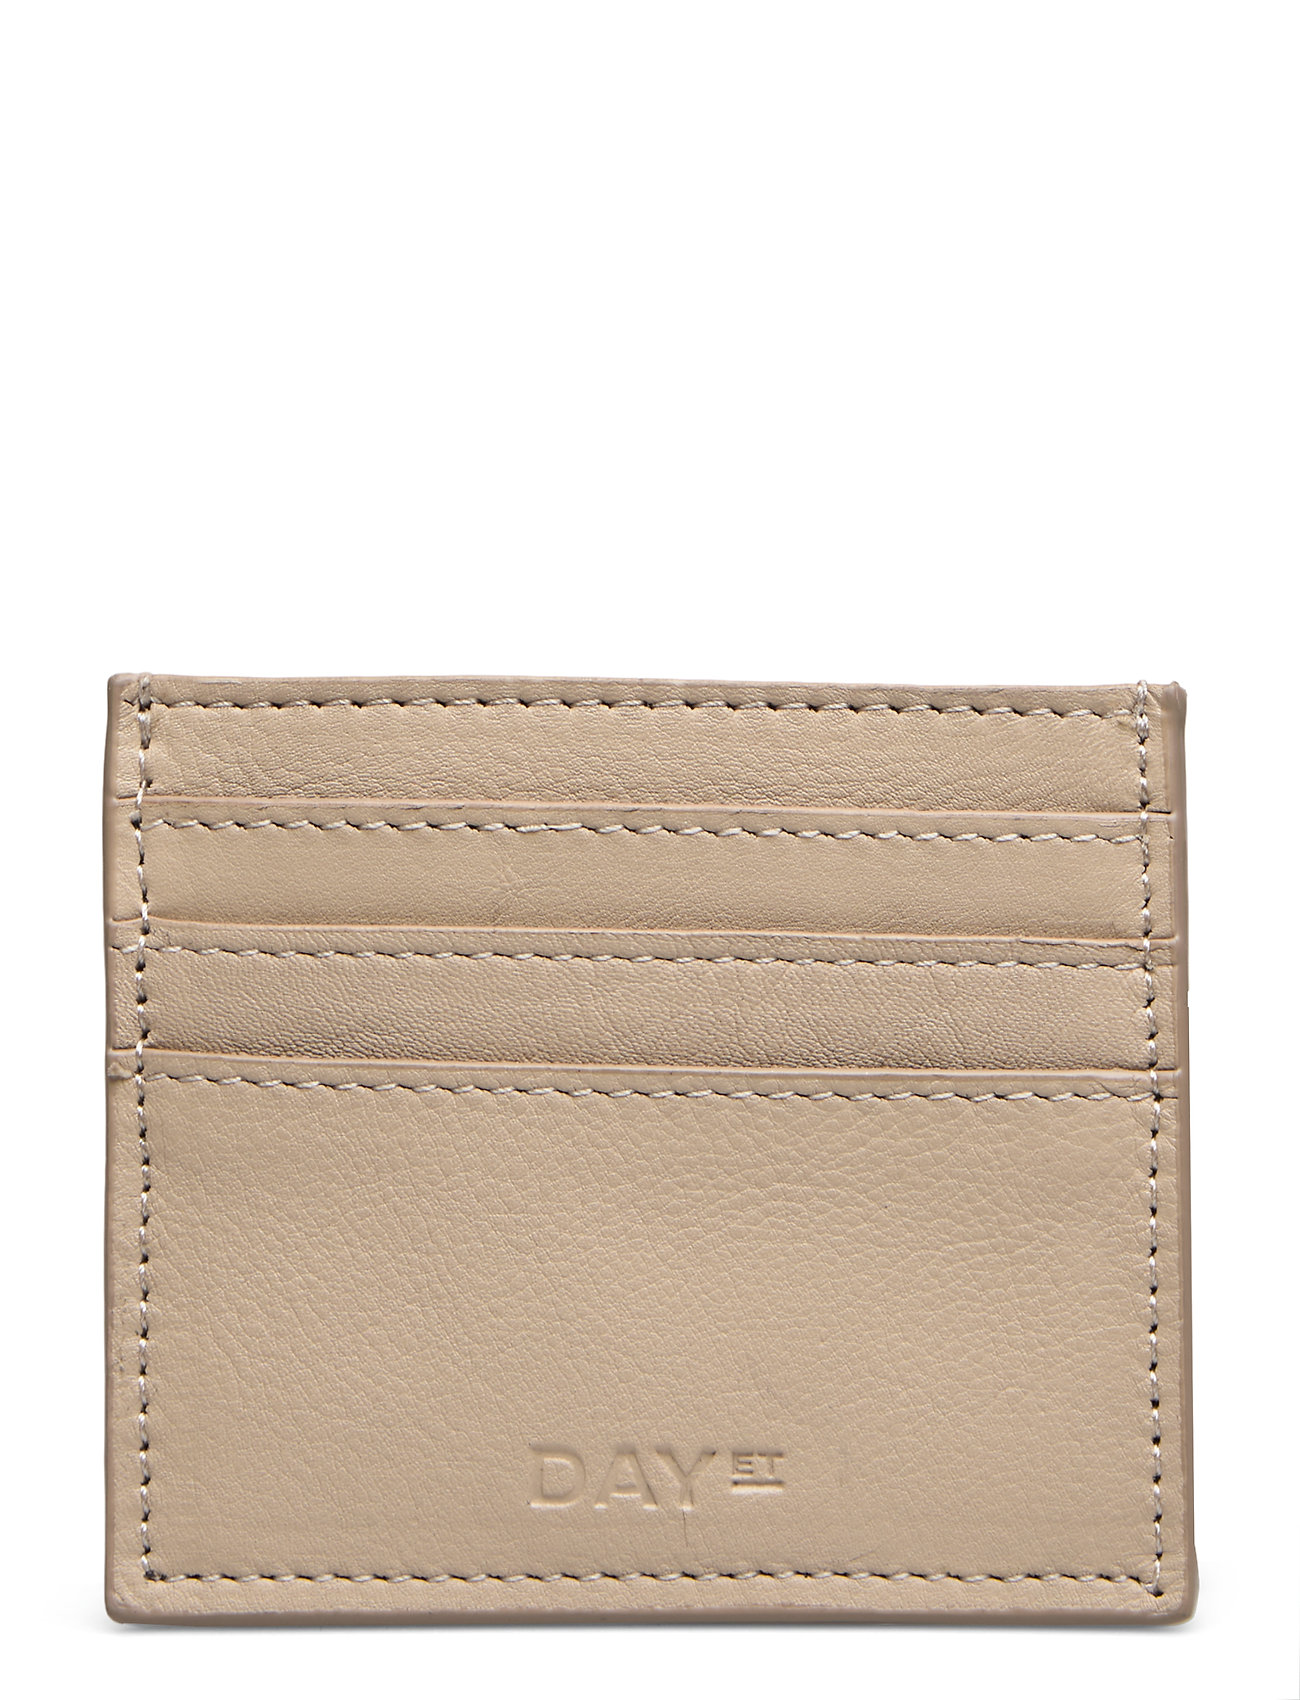 Image of Day Card Bags Card Holders & Wallets Card Holder Beige DAY Et (3344406011)